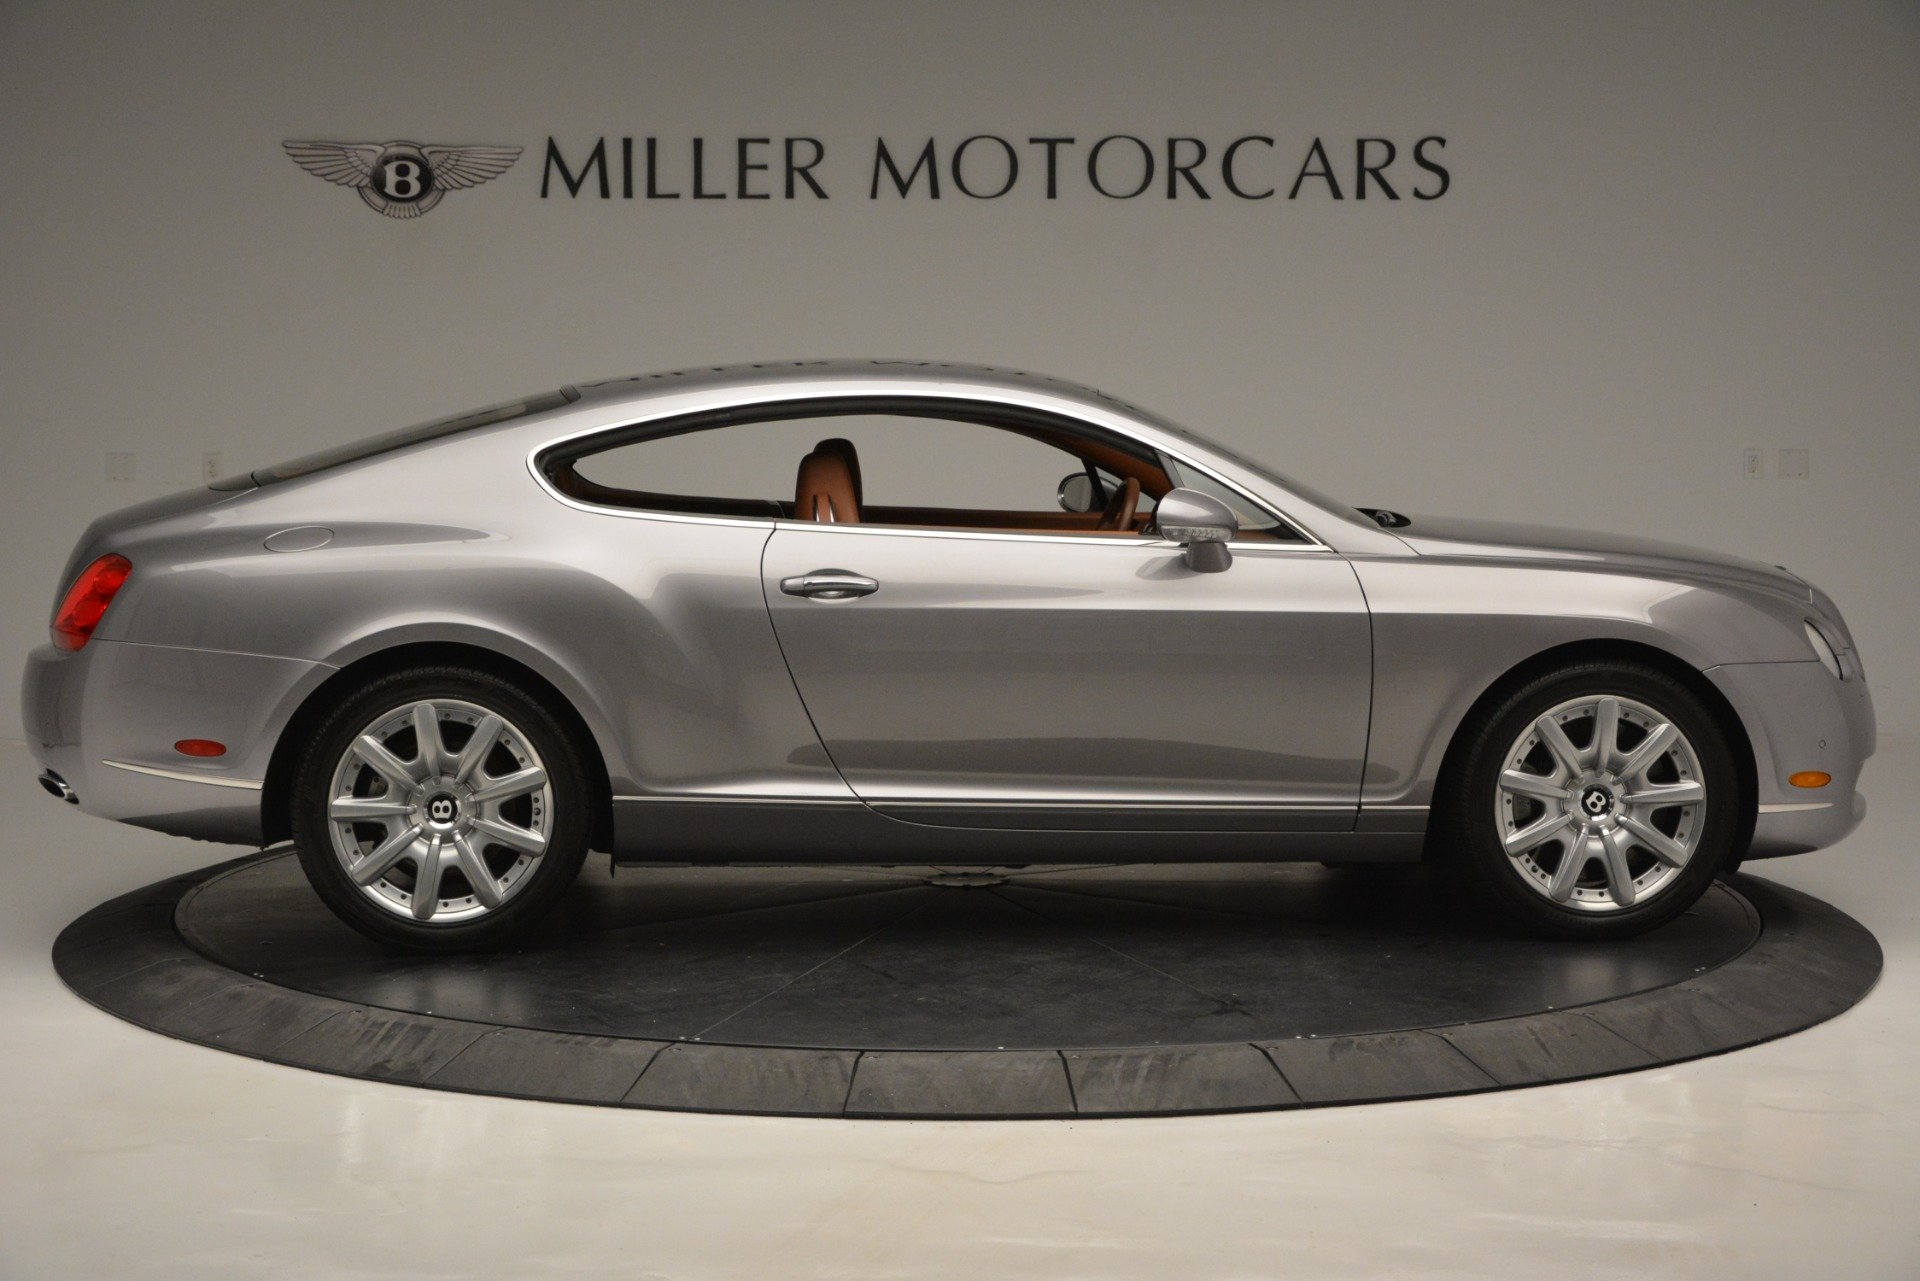 Used 2005 Bentley Continental GT GT Turbo For Sale In Greenwich, CT 2726_p9